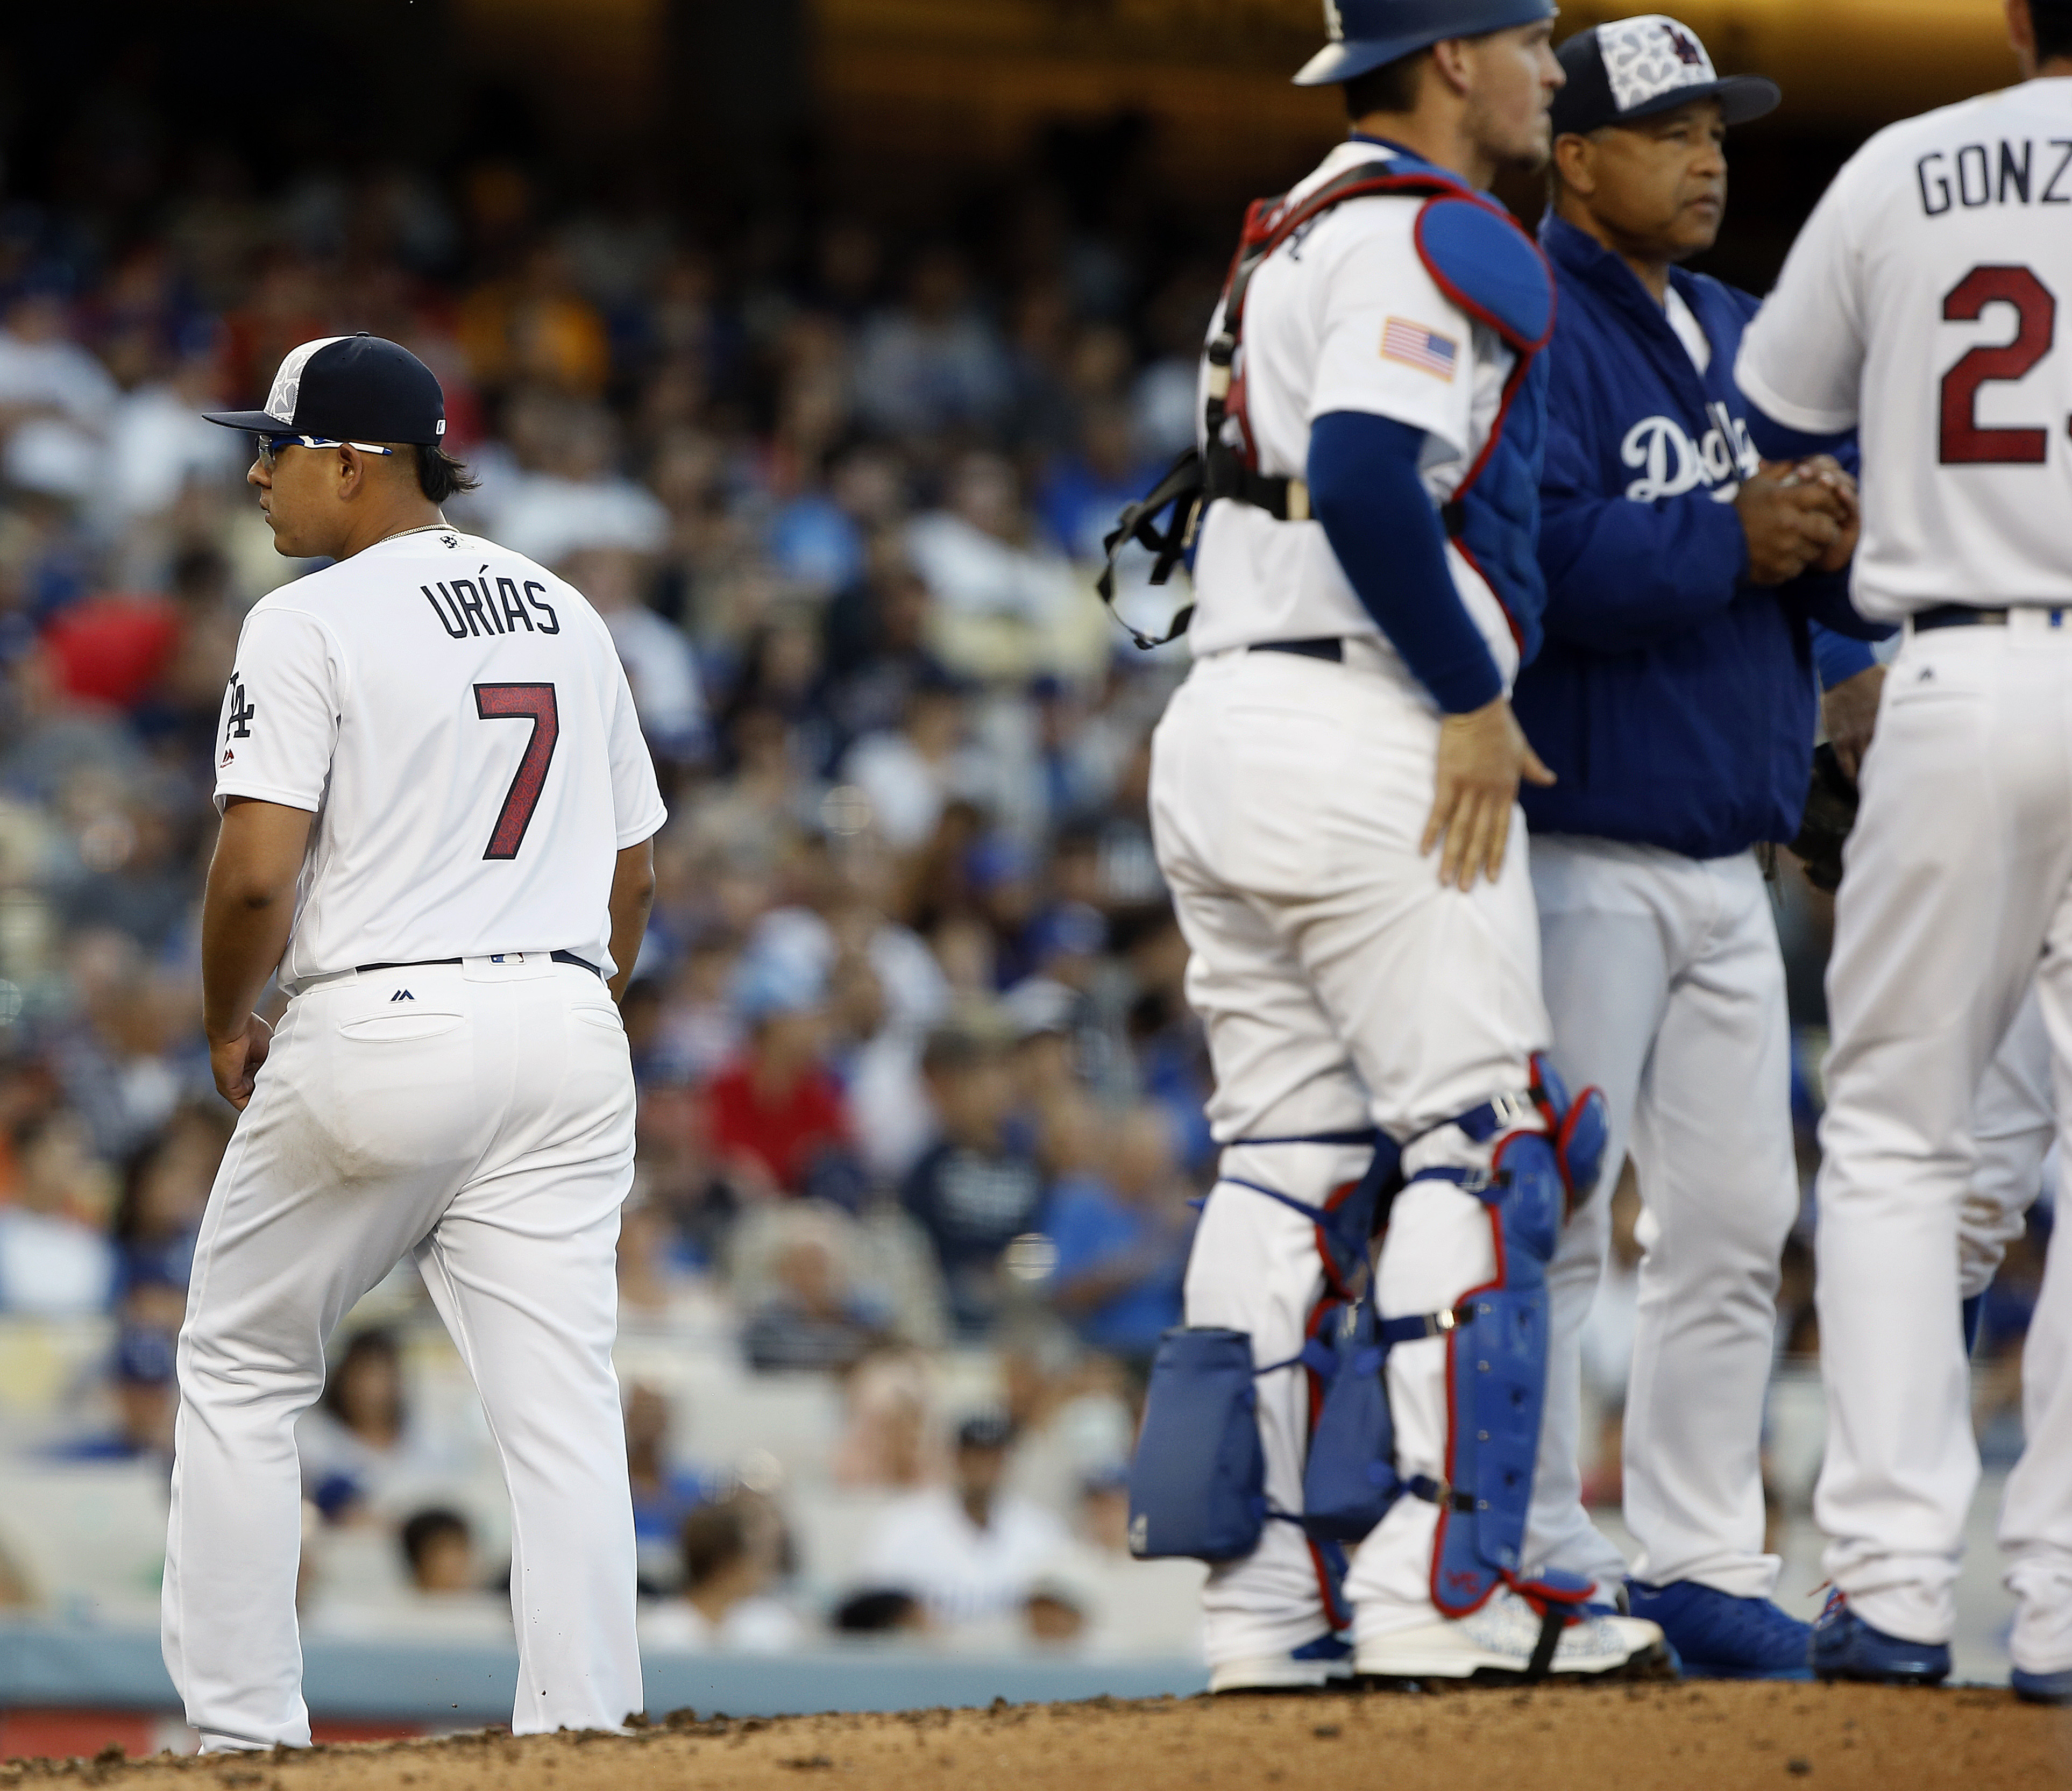 Los Angeles Dodgers starting pitcher Julio Urias (7) walks away from the mound after being pulled by manager Dave Roberts, second from right, with catcher Yasmani Grandal and first baseman Adrian Gonzalez, right, during the fourth inning of a baseball gam